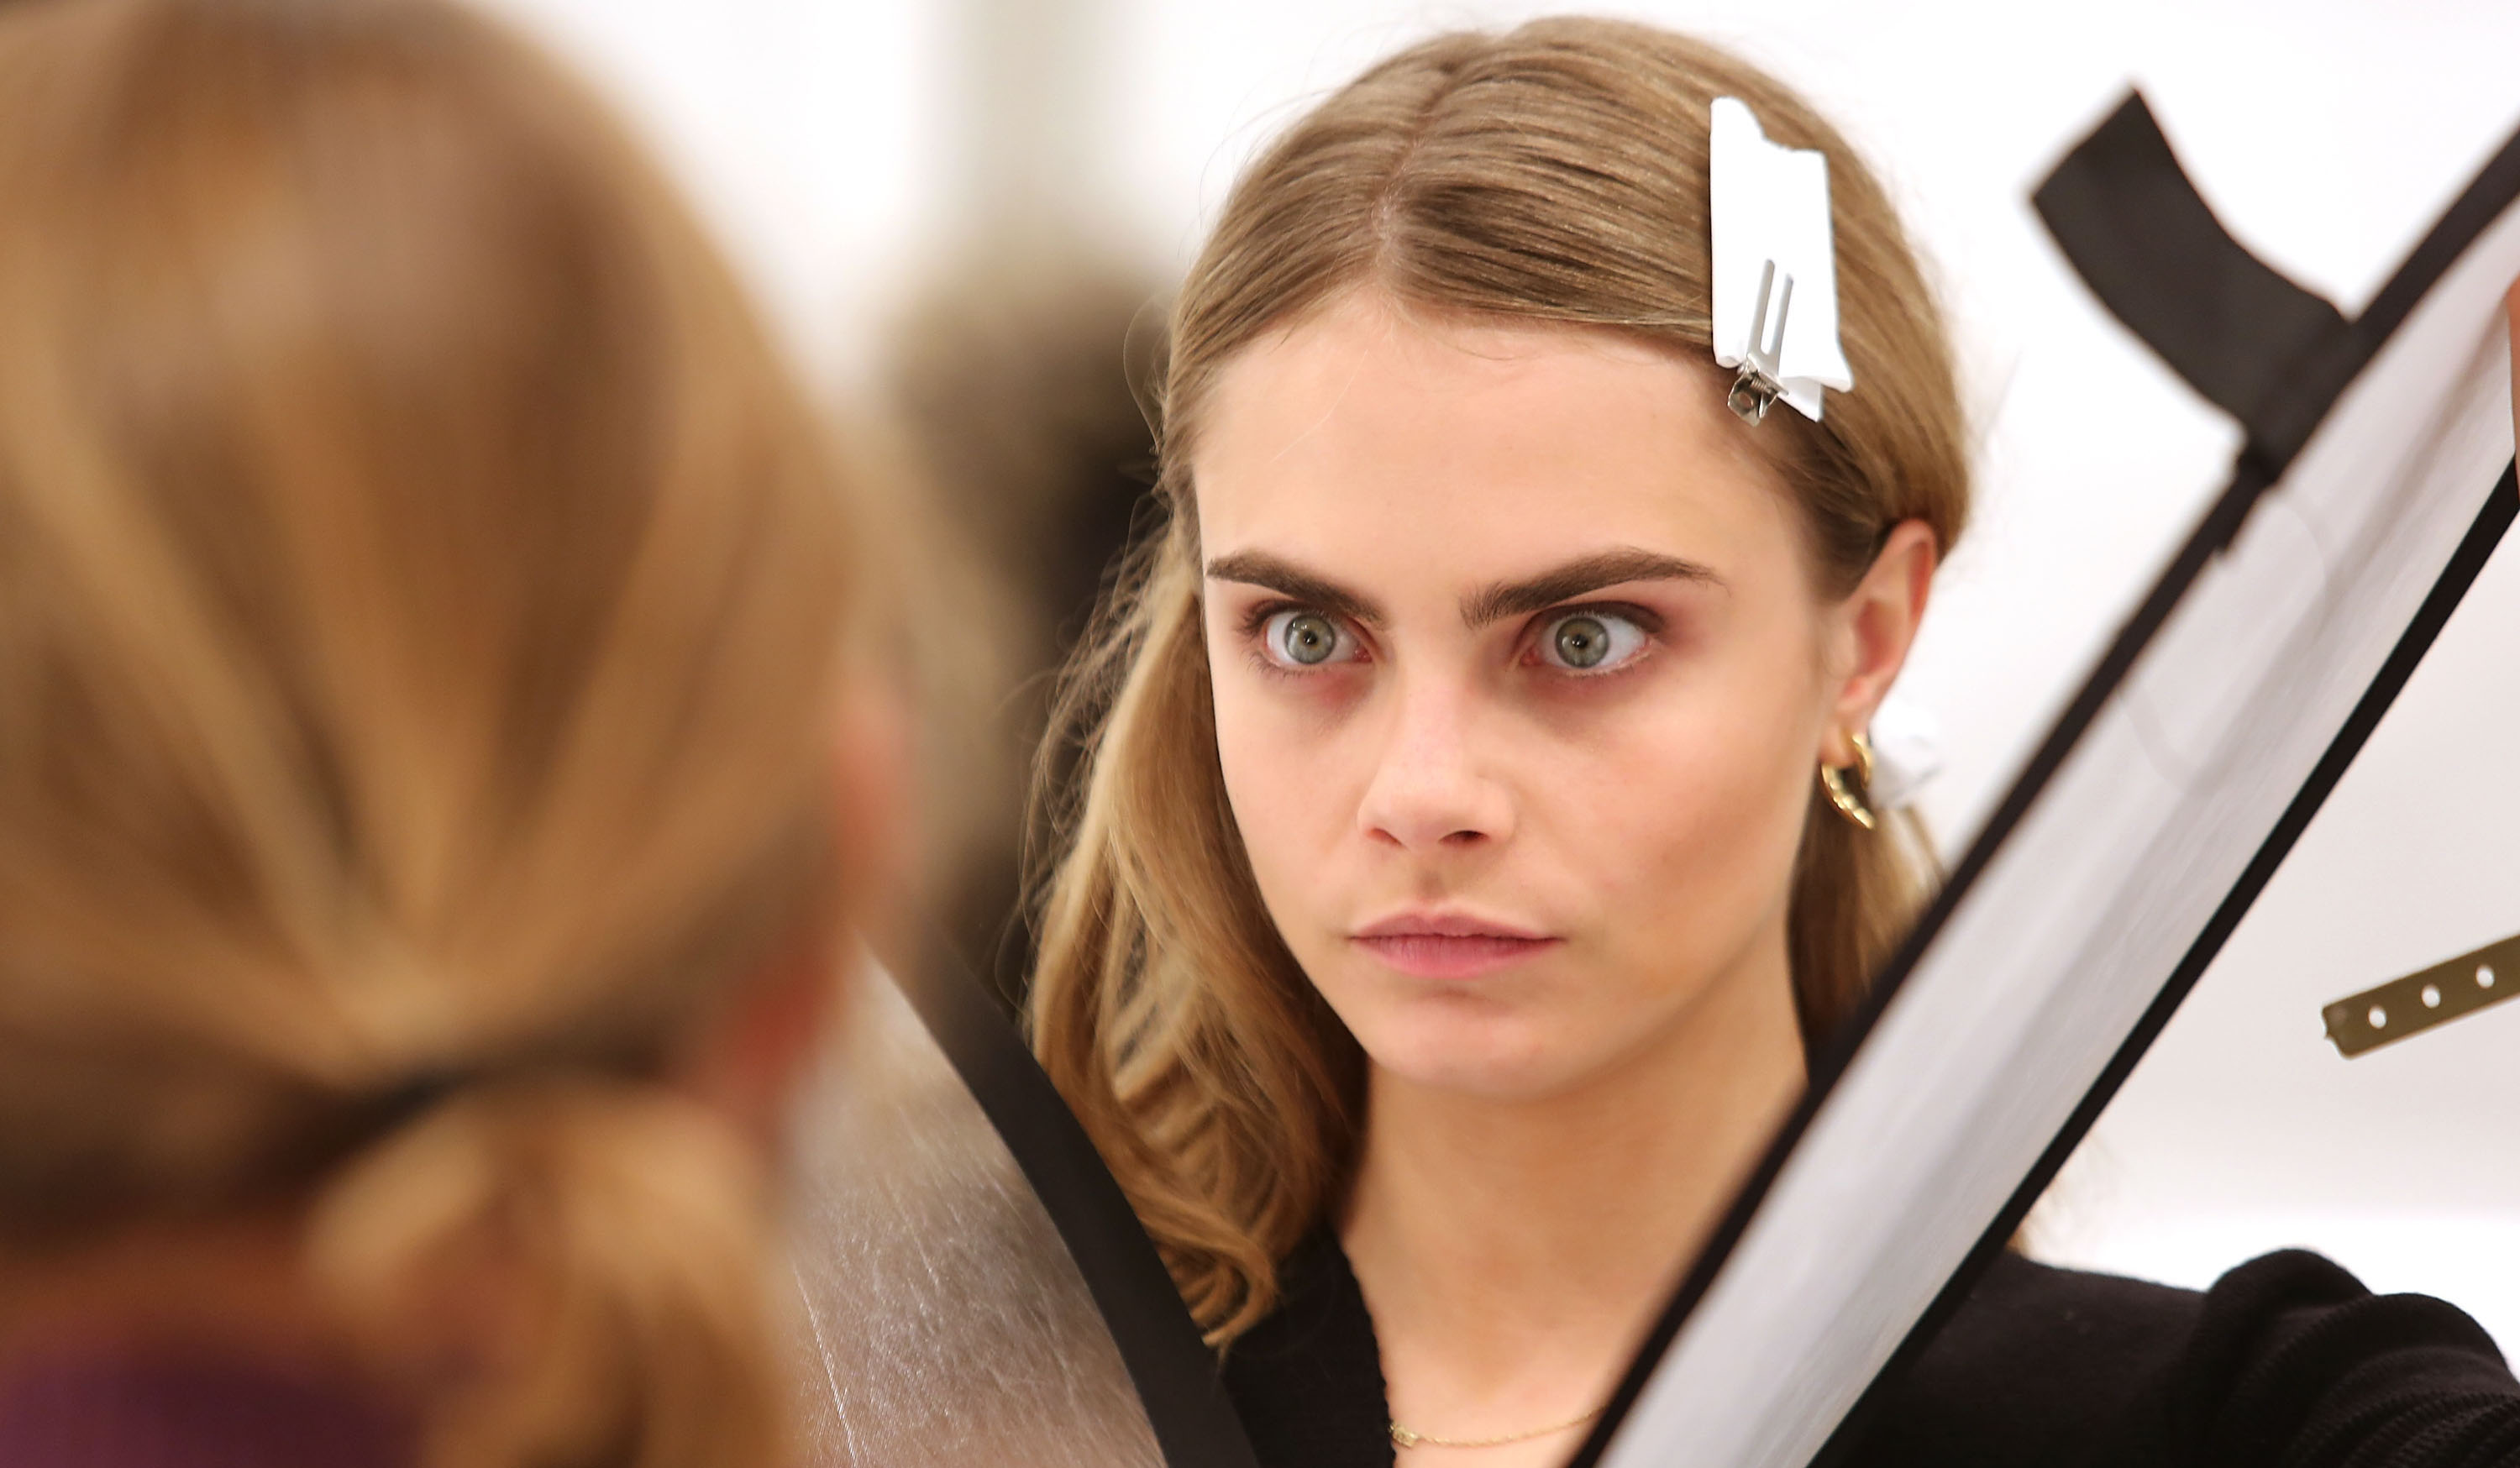 Gallery: Cara Delevingne and Harry Styles at Burberry Prorsum's London Fashion Week AW14 show